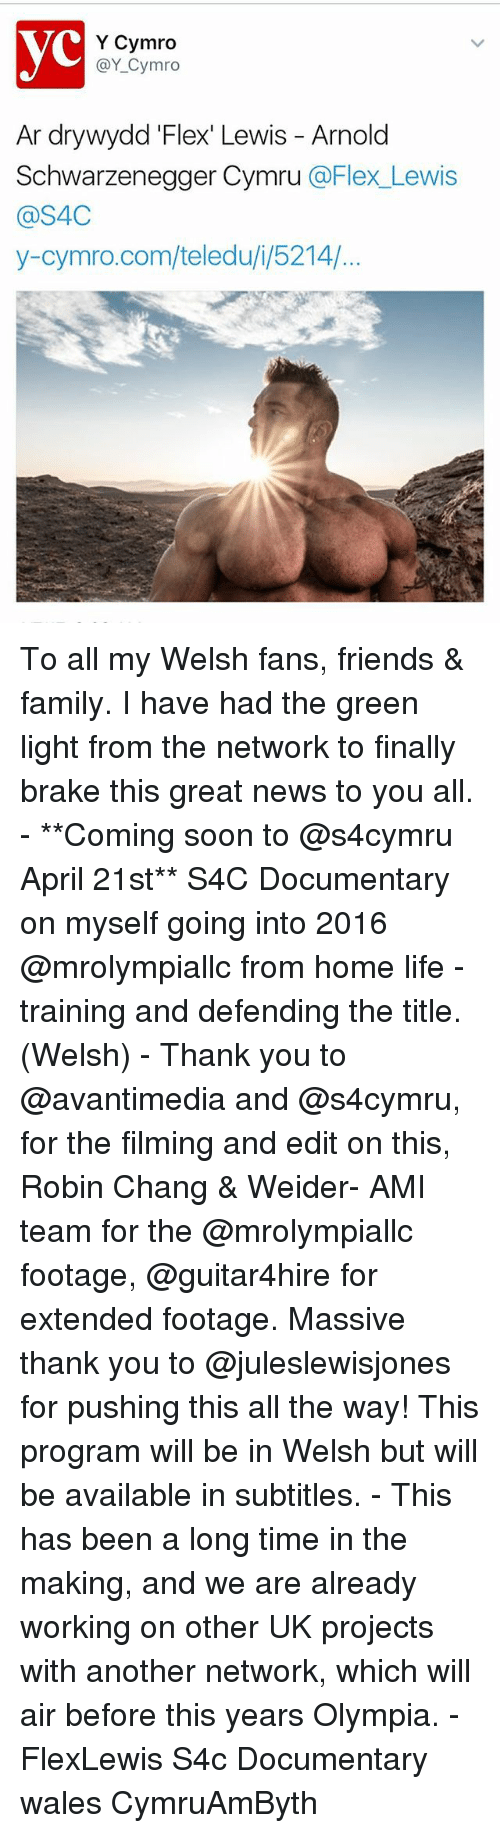 olympia: Y Cymro  @Y Cymro  Ar dry wydd Flexi Lewis Arnold  Schwarzenegger Cymru  @Flex Lewis  @S4C  y-cymro.com/teledu i, 5214/ To all my Welsh fans, friends & family. I have had the green light from the network to finally brake this great news to you all. - **Coming soon to @s4cymru April 21st** S4C Documentary on myself going into 2016 @mrolympiallc from home life - training and defending the title. (Welsh) - Thank you to @avantimedia and @s4cymru, for the filming and edit on this, Robin Chang & Weider- AMI team for the @mrolympiallc footage, @guitar4hire for extended footage. Massive thank you to @juleslewisjones for pushing this all the way! This program will be in Welsh but will be available in subtitles. - This has been a long time in the making, and we are already working on other UK projects with another network, which will air before this years Olympia. - FlexLewis S4c Documentary wales CymruAmByth